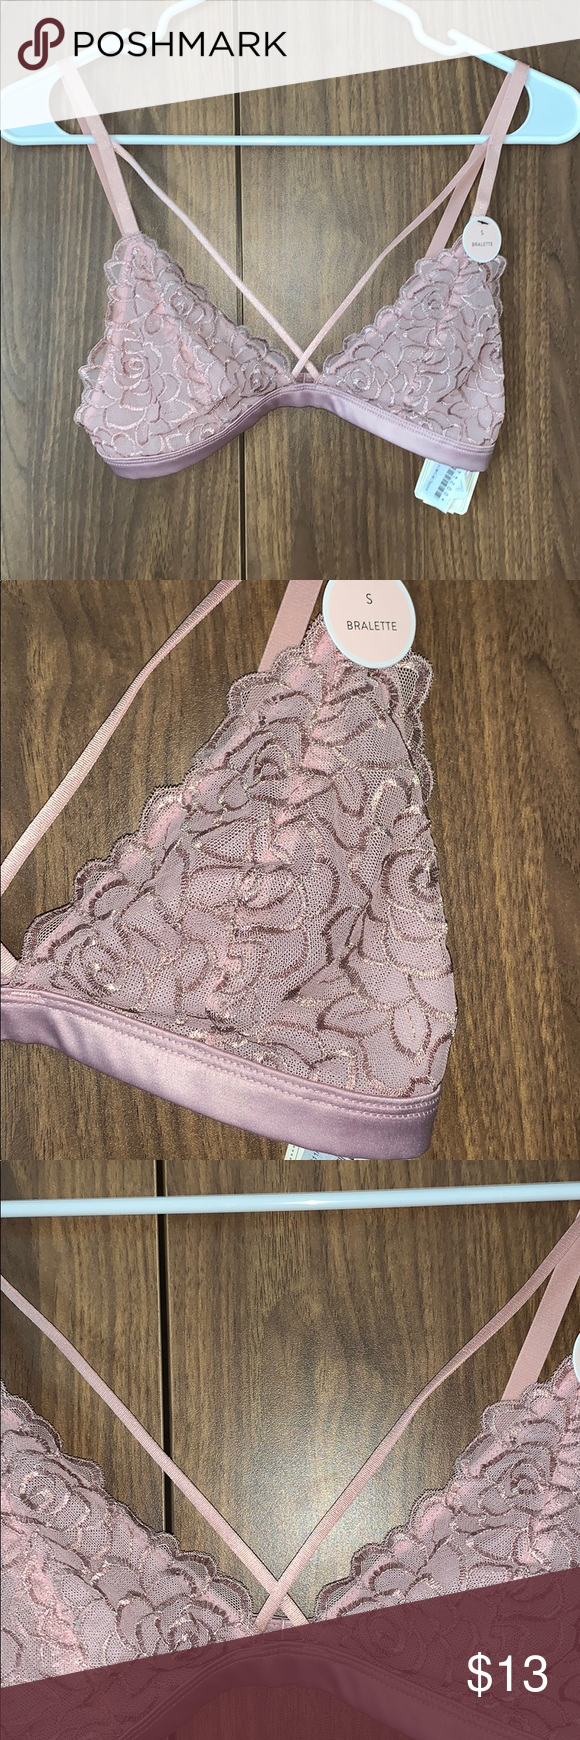 433f2b0a2d Forever 21 Dusty Rose Pink Lace Strappy Bralette Never worn. Really cute  shade of pink